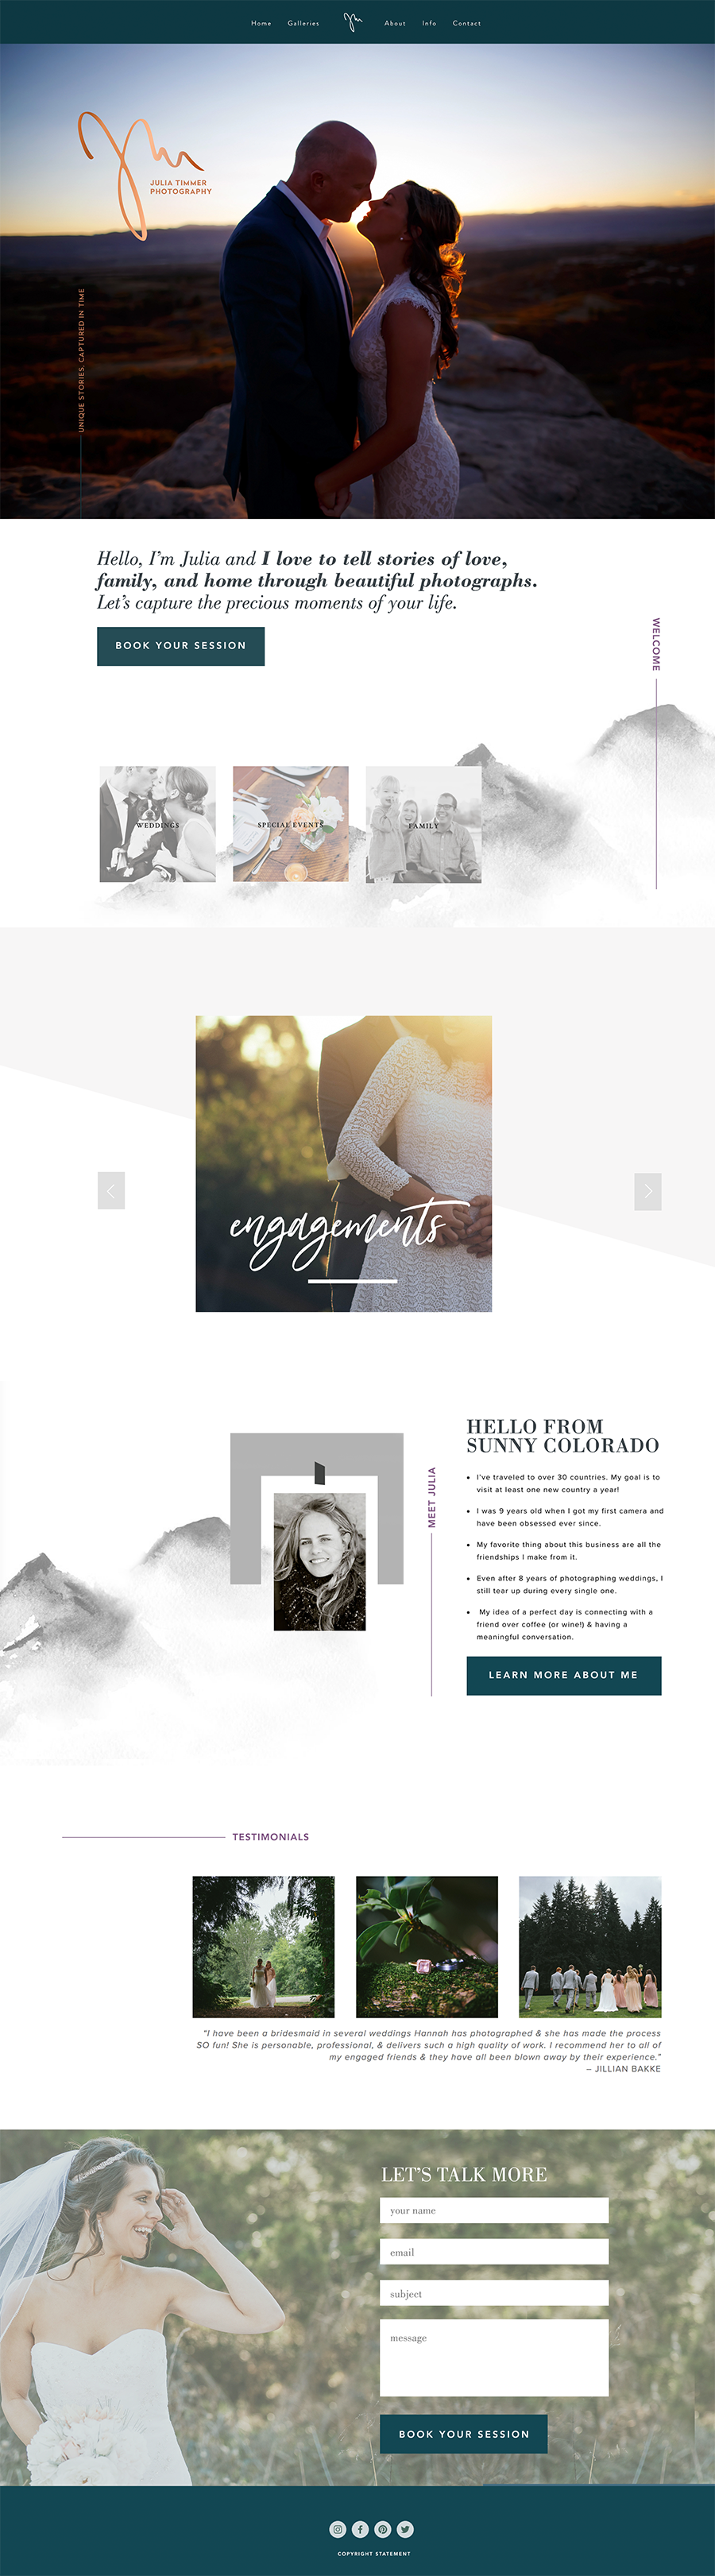 JULIA TIMMER PHOTOGRAPHY  | squarespace |  live»